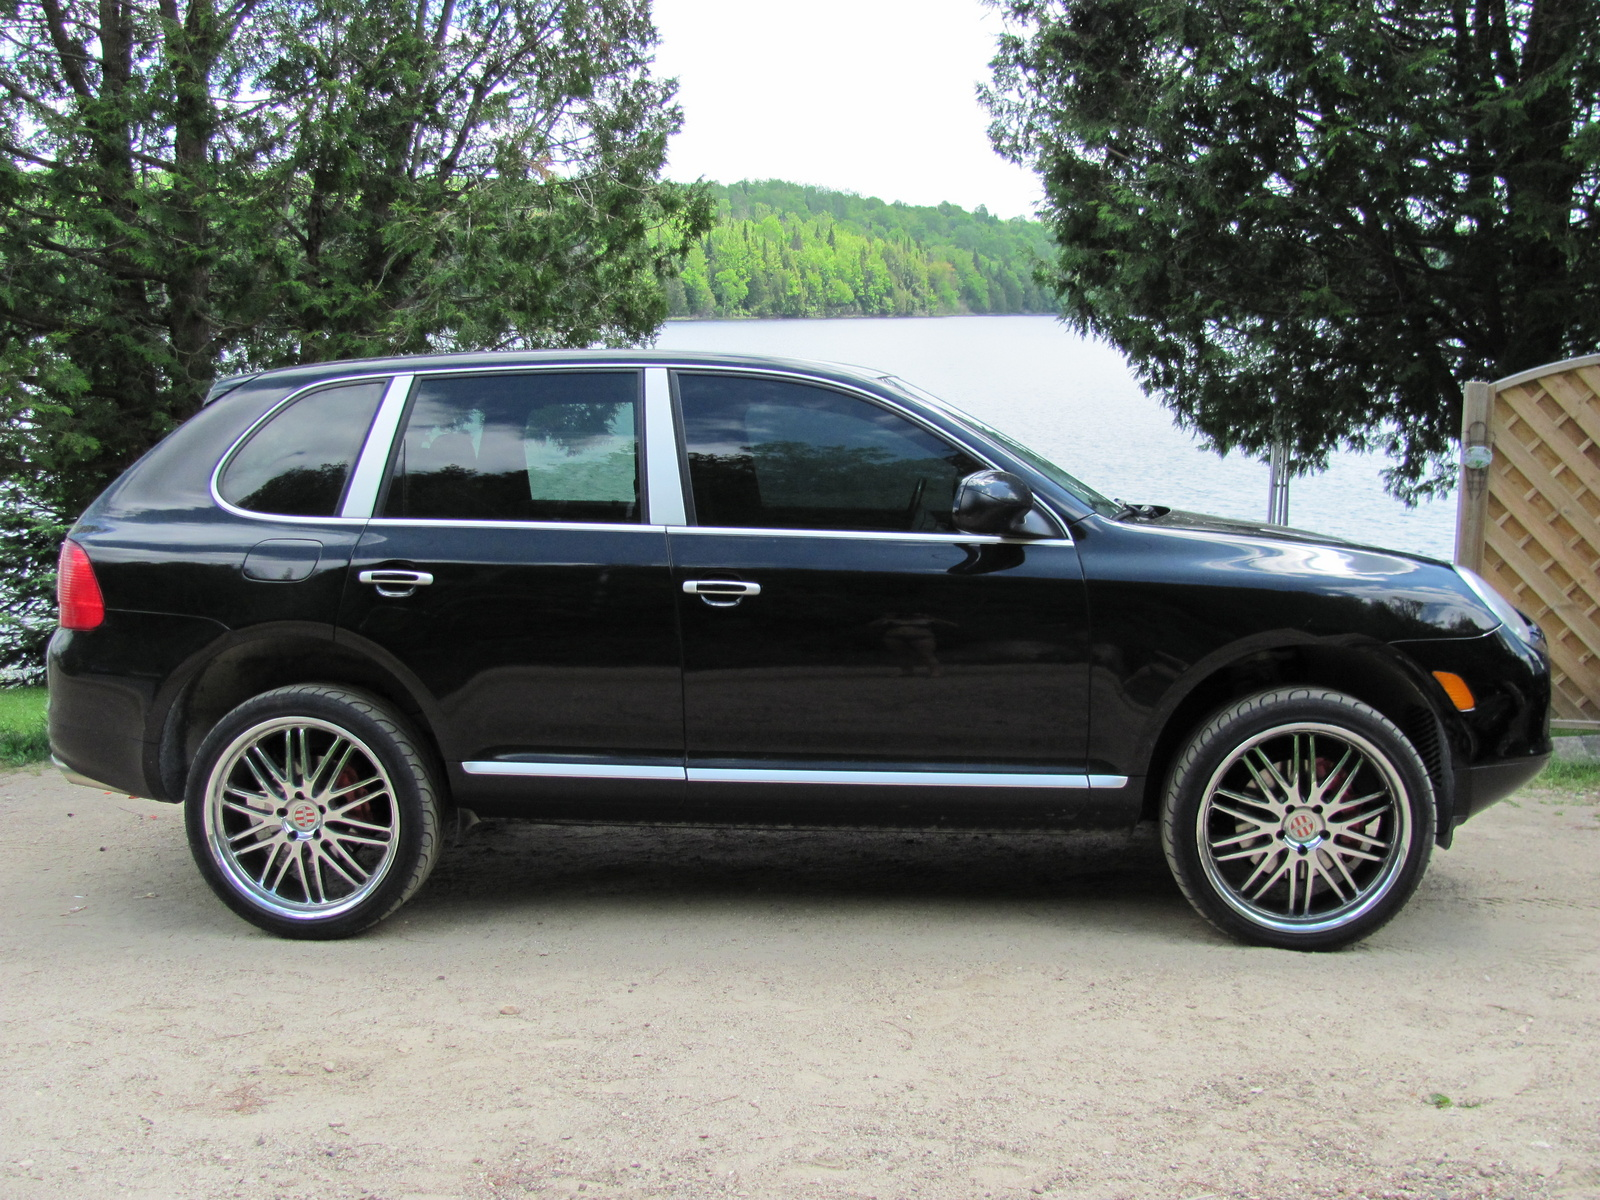 Porsche Cayenne Turbo S 2005 Review Amazing Pictures And Images Look At The Car